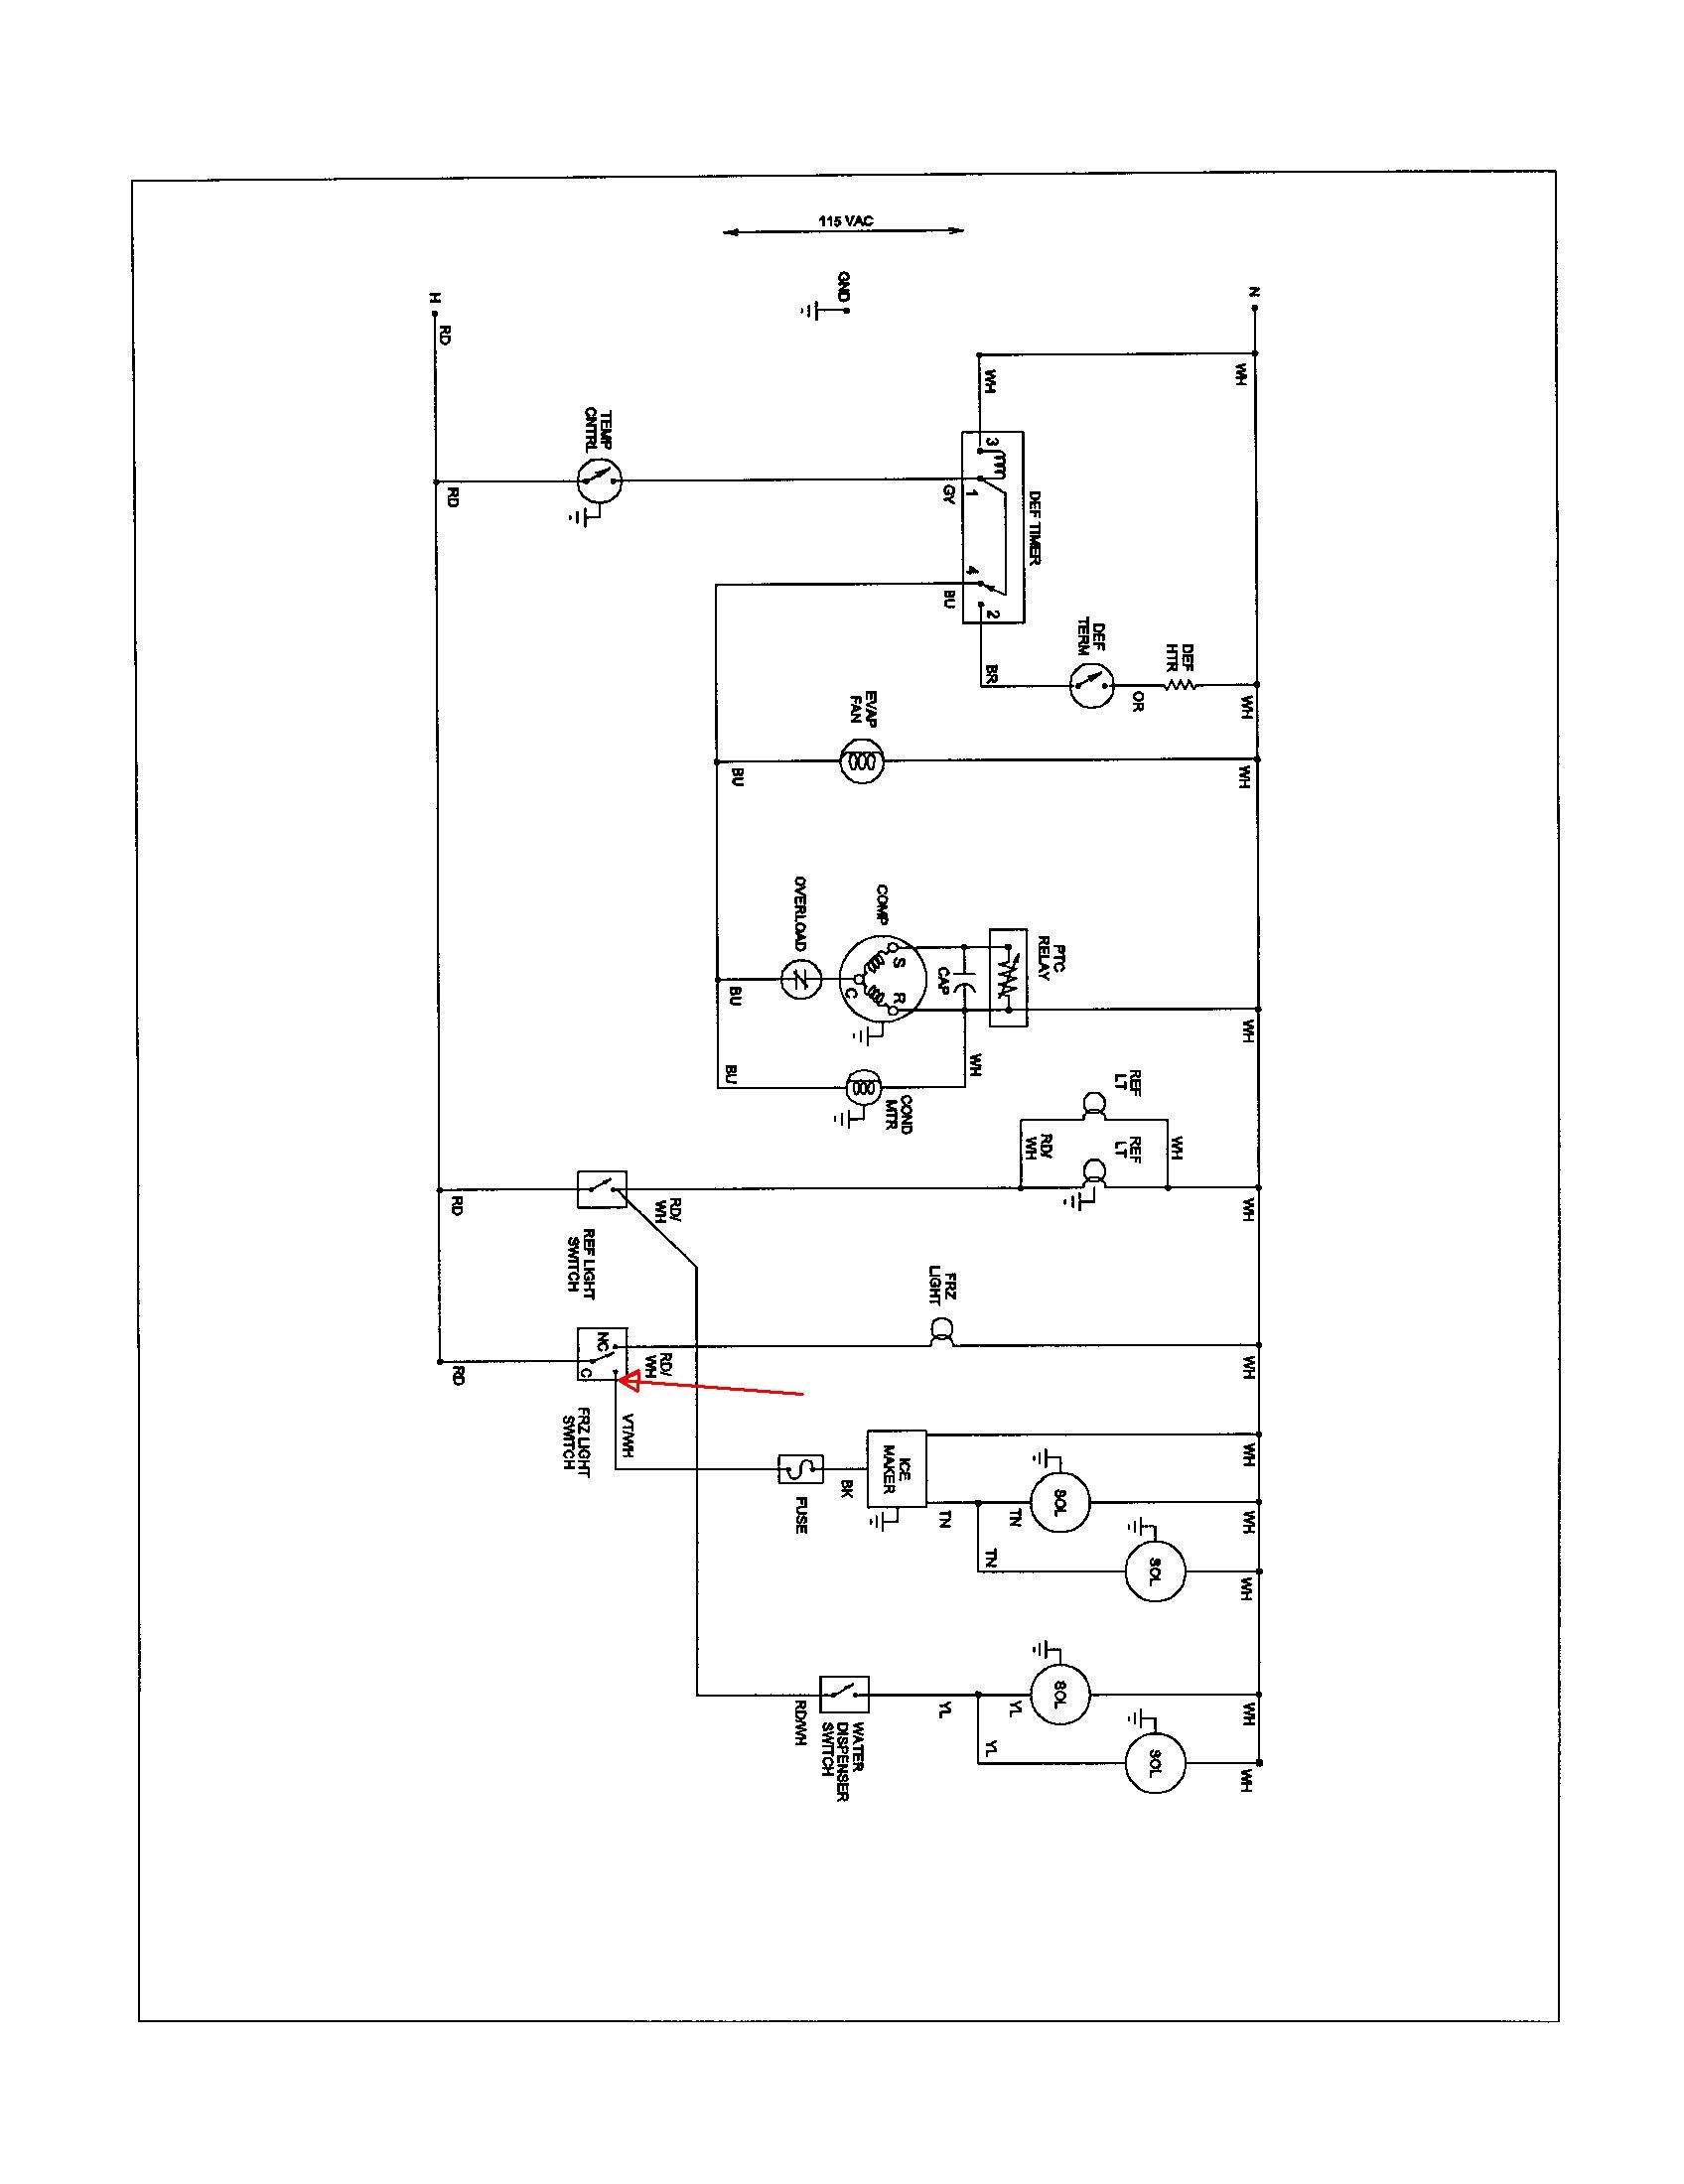 model arb9059cs amana. ice maker will not make ice. no ... amana thermostat wiring diagram #15